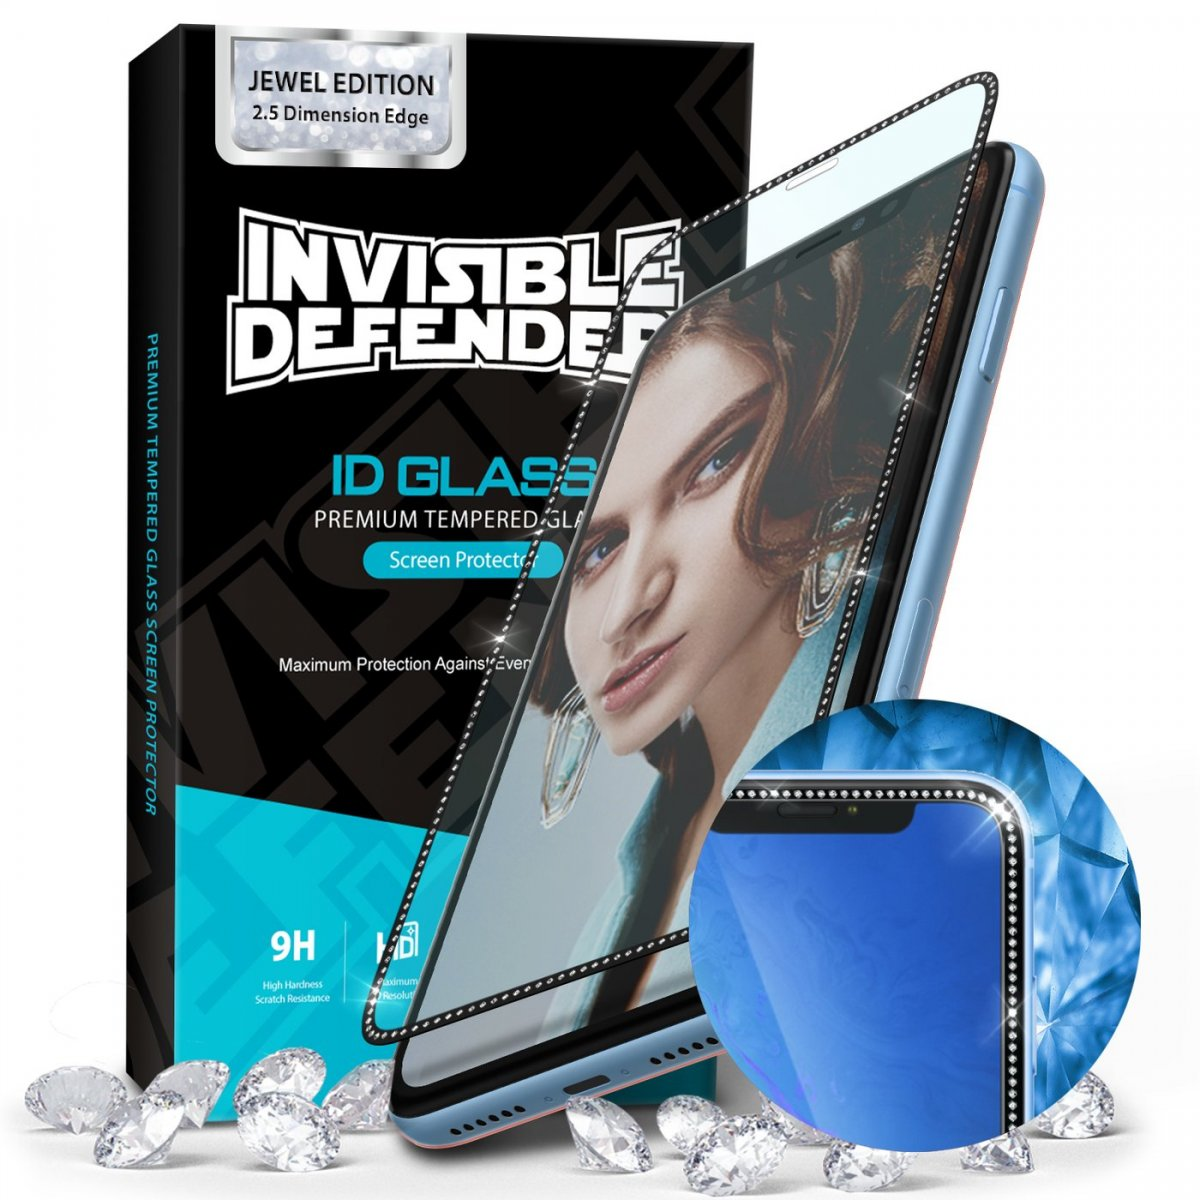 Ringke Invisible Defender ID GLASS Jewel Edition iPhone 11 Pro Max/XS Max